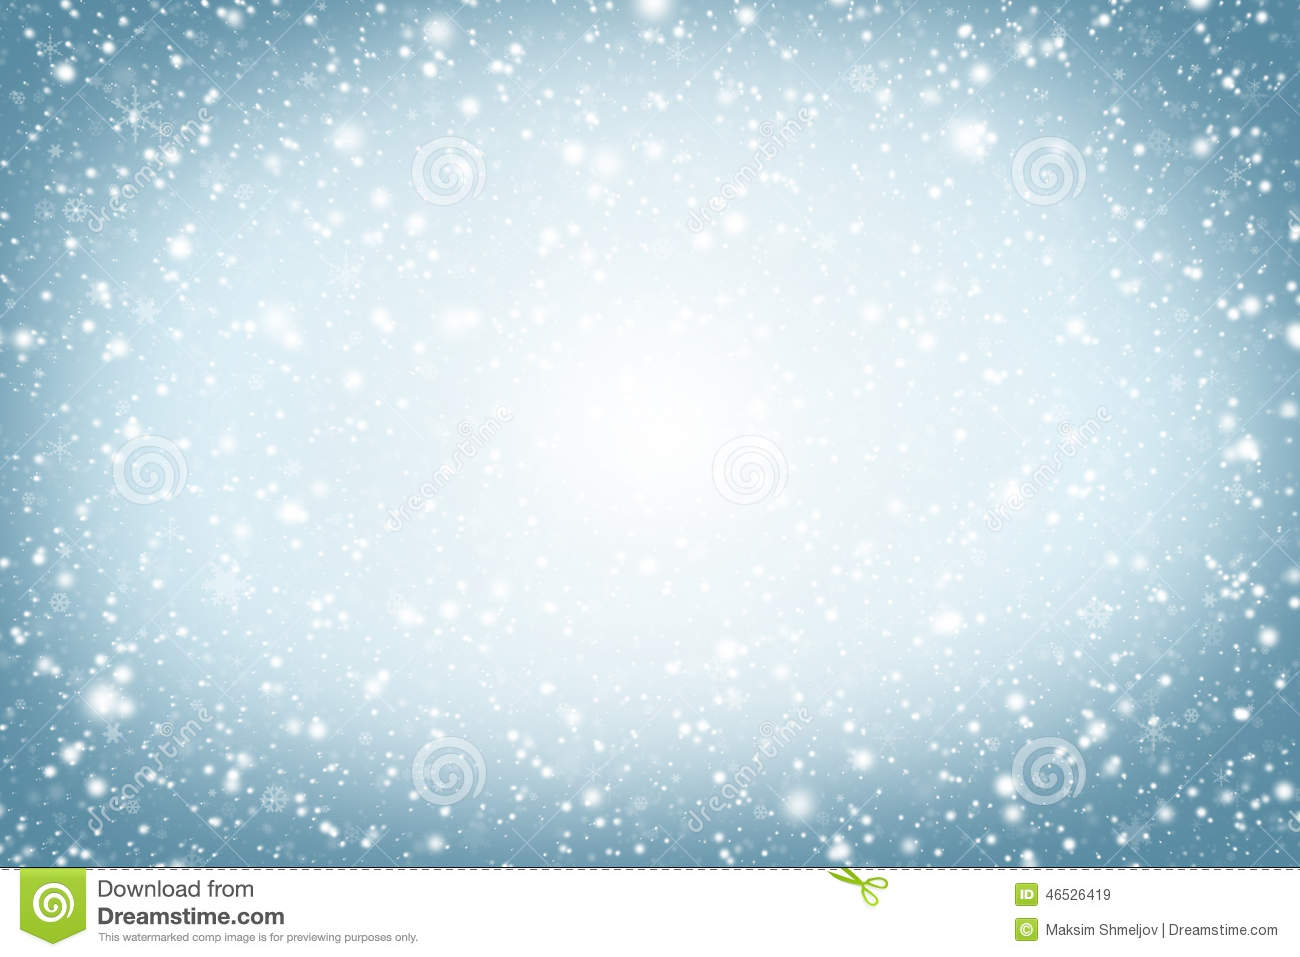 Christmas background. Winter sky, snowflakes and stars